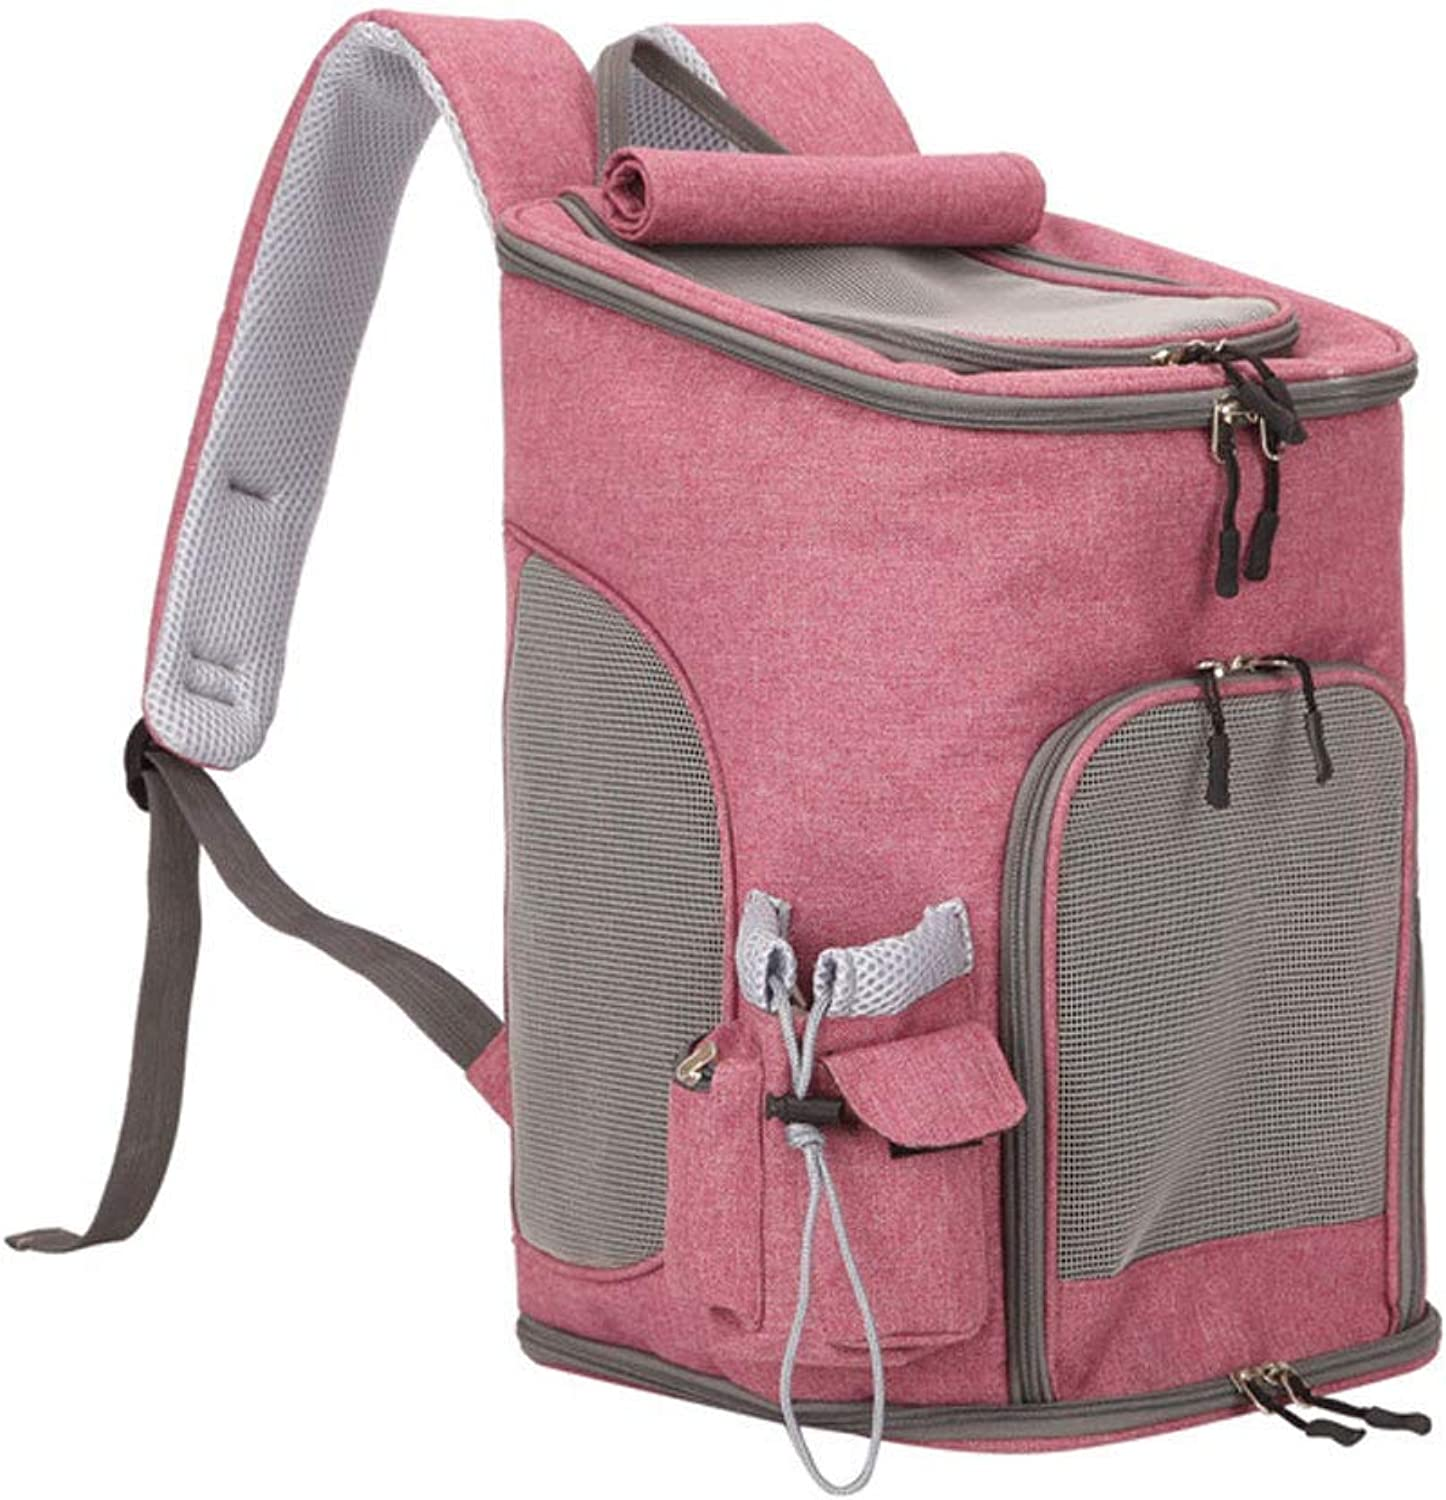 Pet Travel Carrier Pet Carrier Soft Animal Carriers  Portable SoftSided Air Travel Bag  Best for Small Or Medium Dog and Cat Ourtdoor Pet Bag (color   Dark Pink)